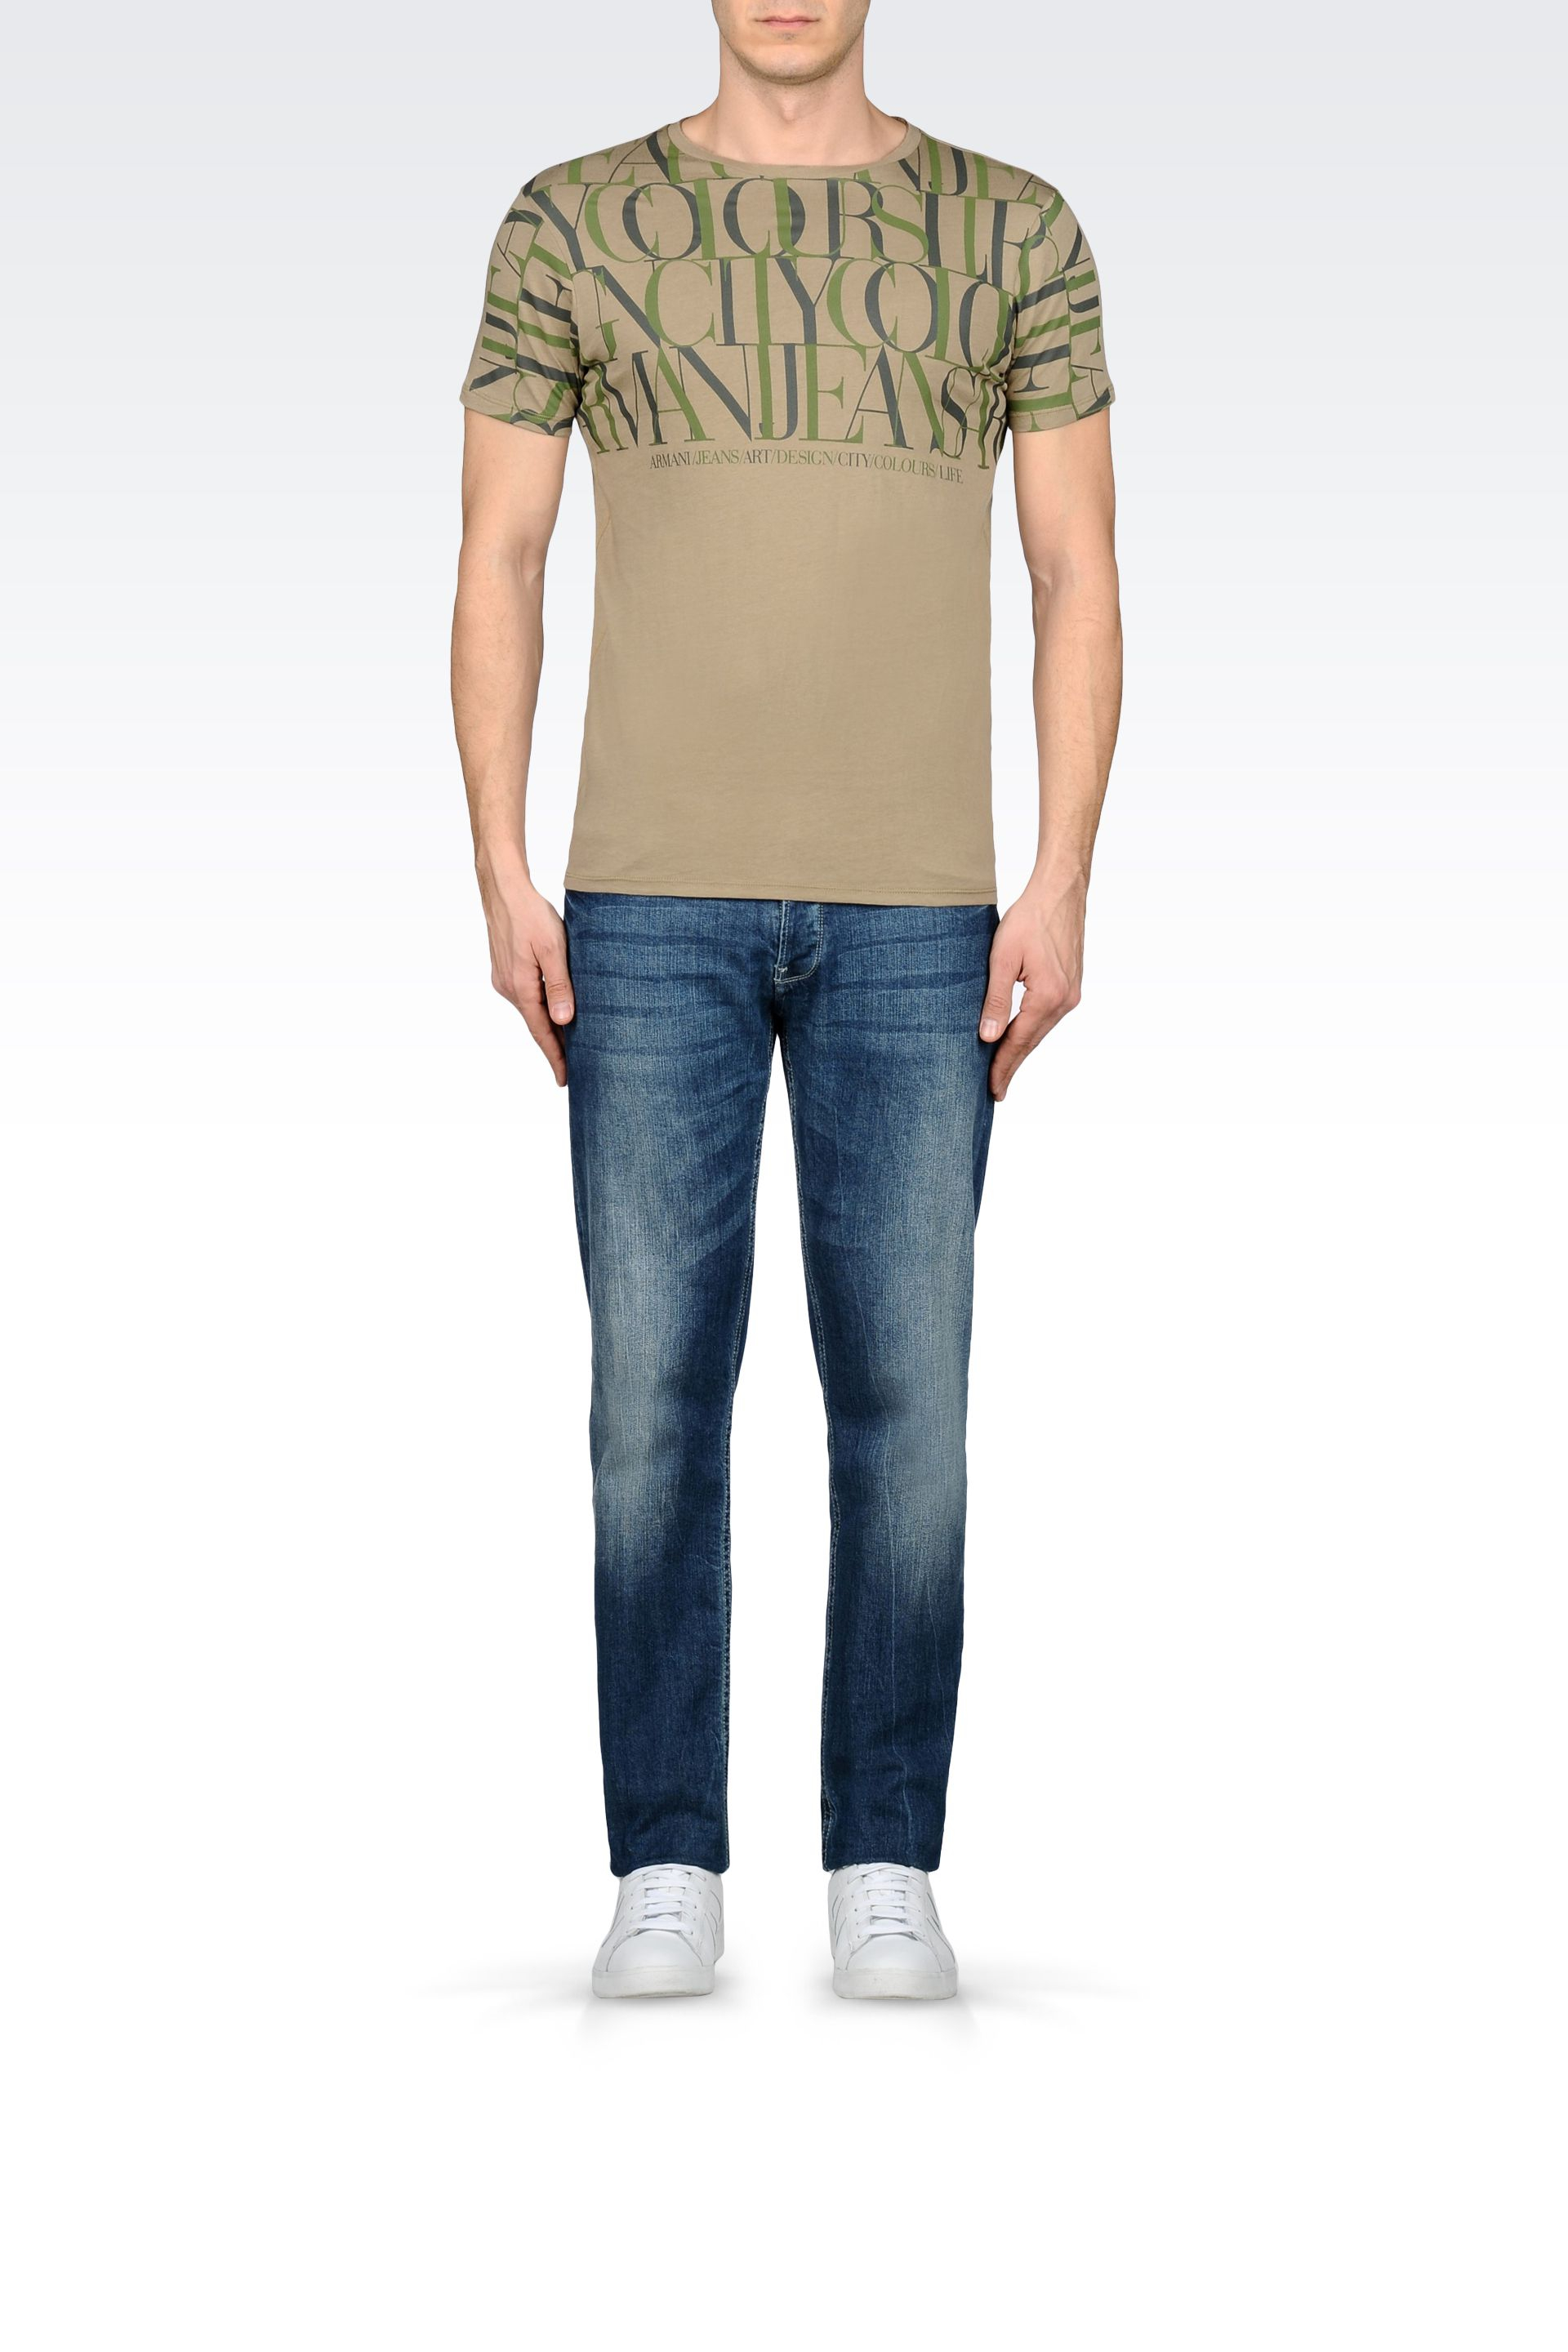 armani jeans t shirt in cotton jersey in khaki for men. Black Bedroom Furniture Sets. Home Design Ideas